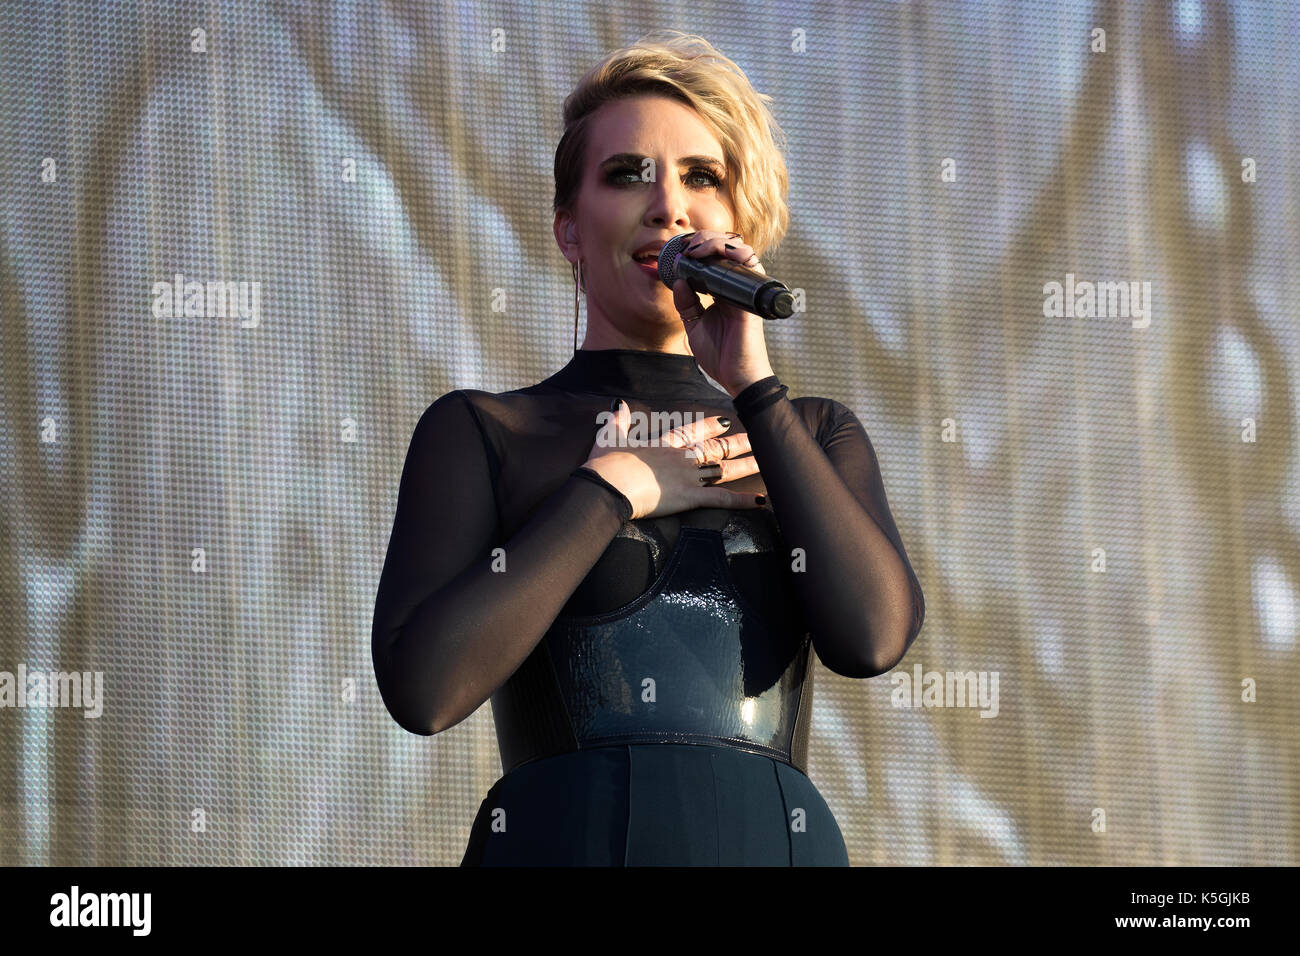 claire richards 2017 - photo #27